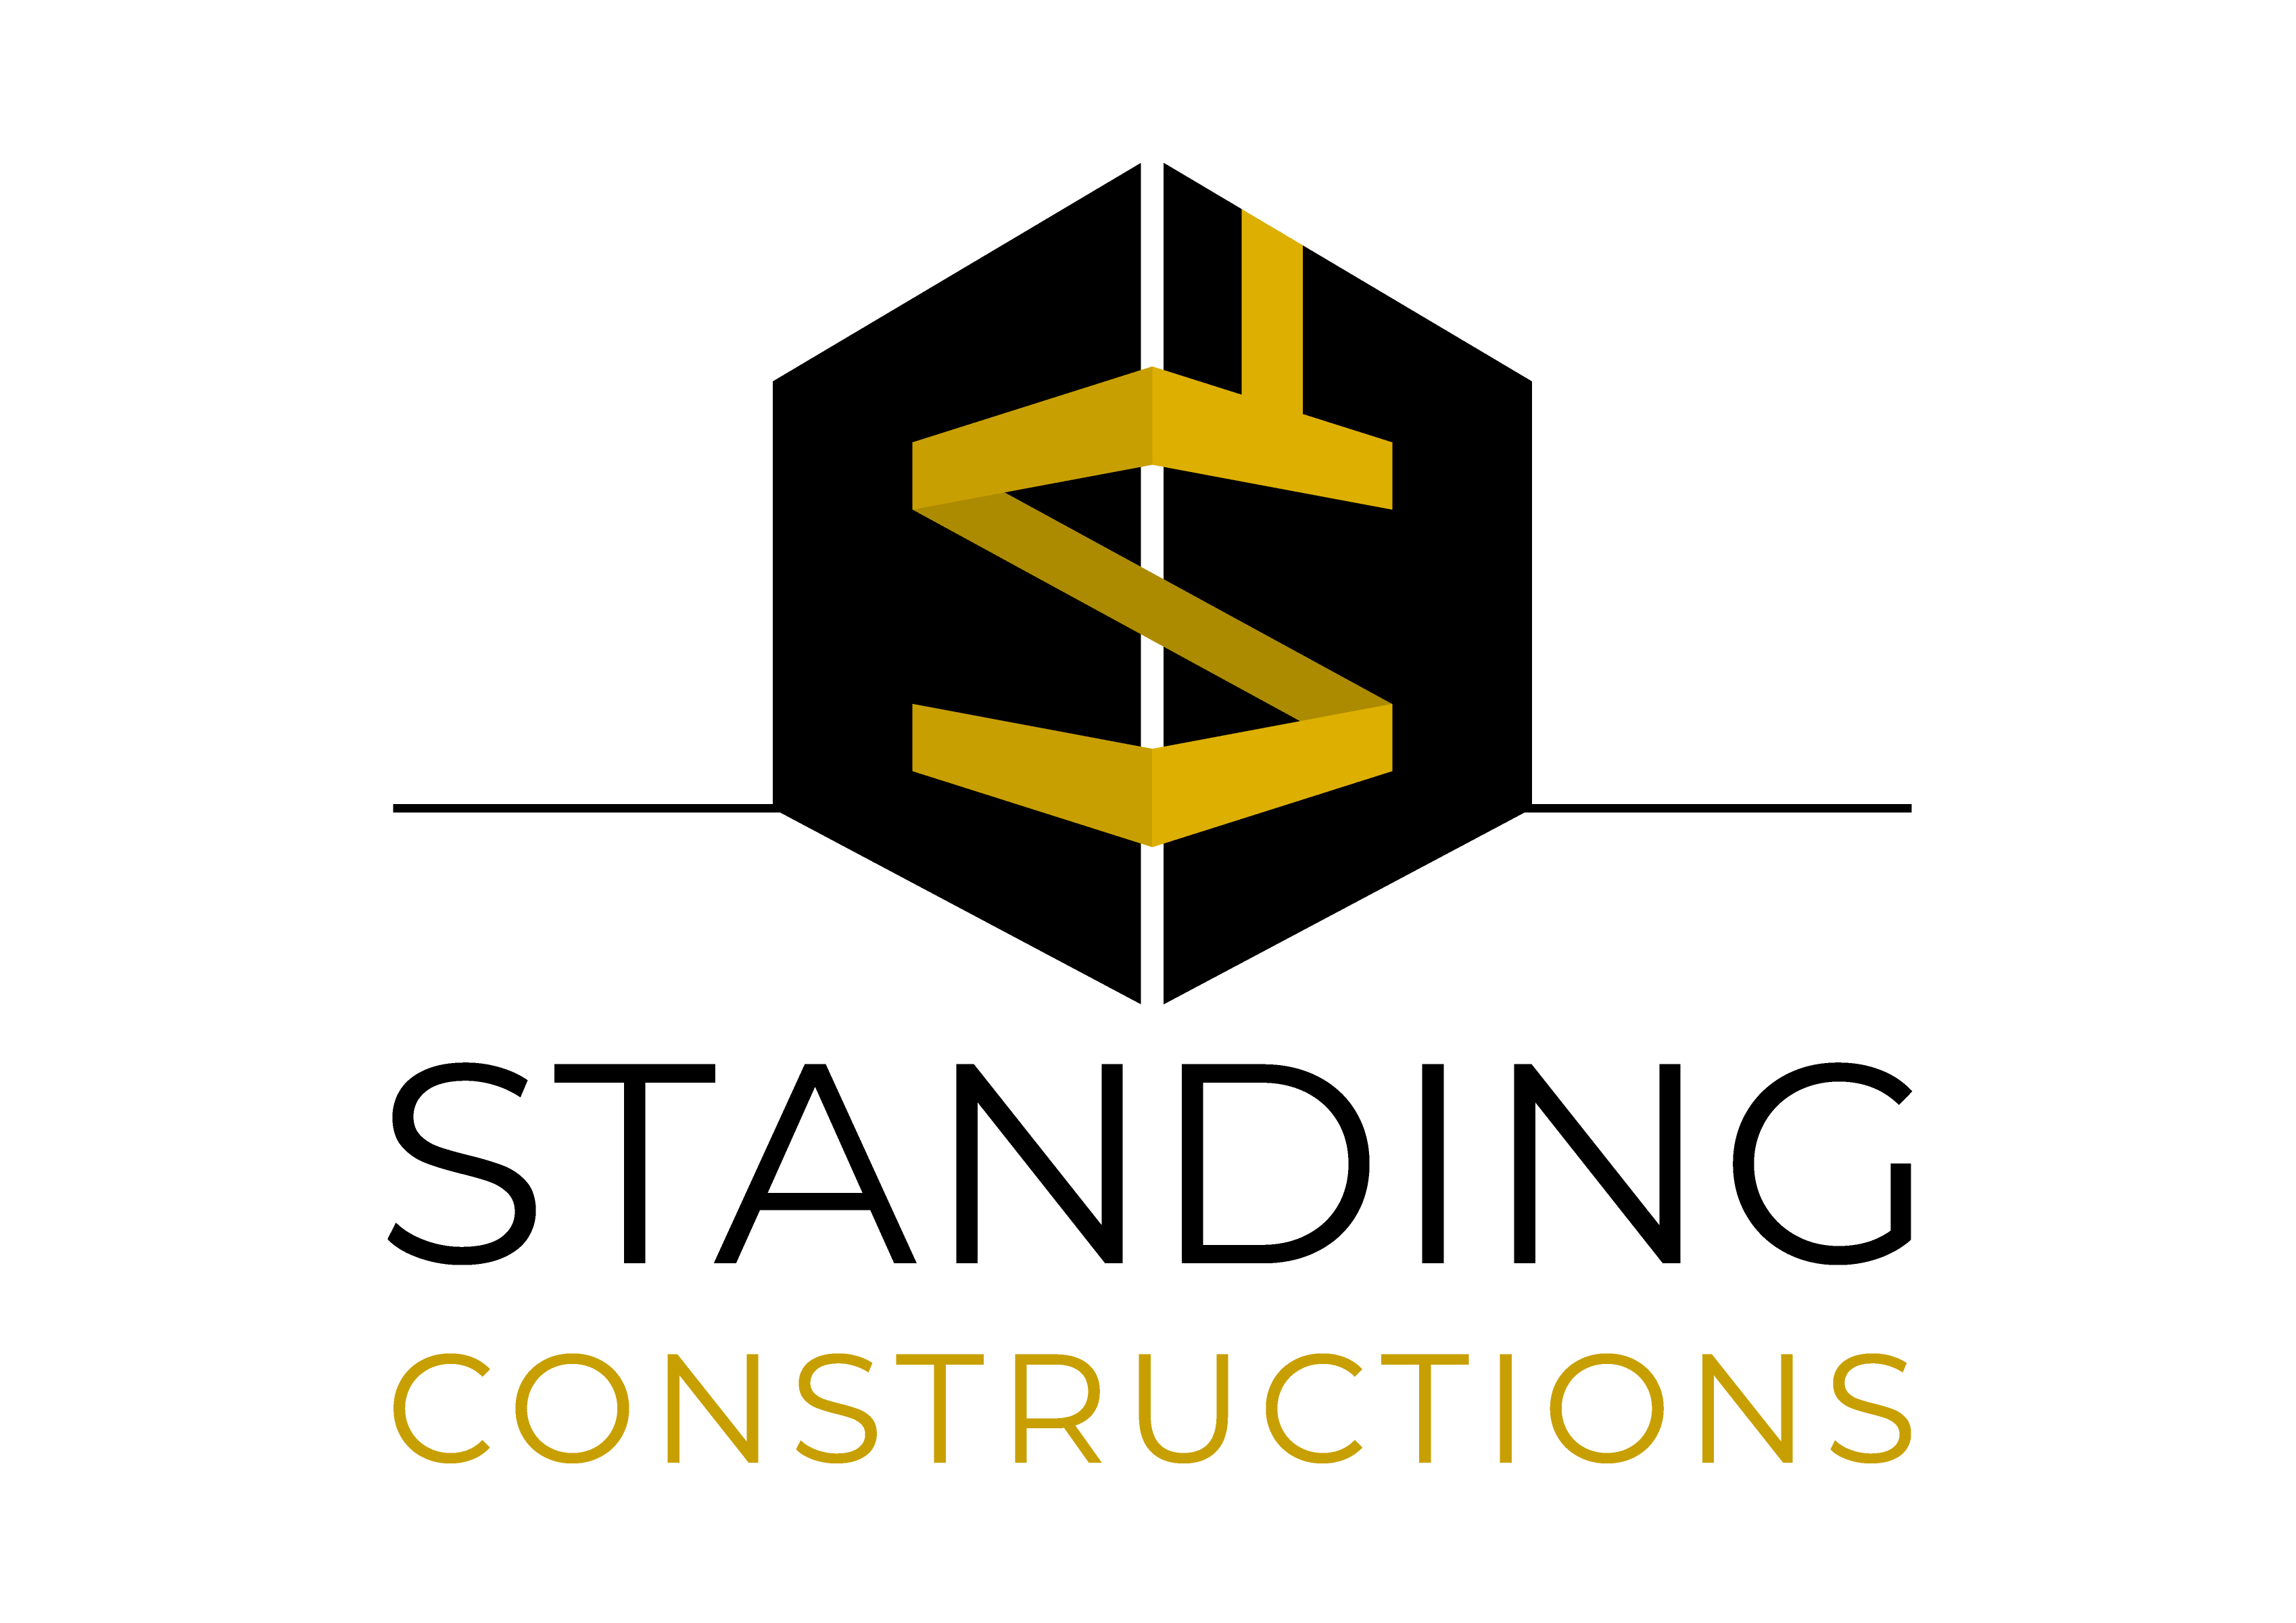 Standing Constructions